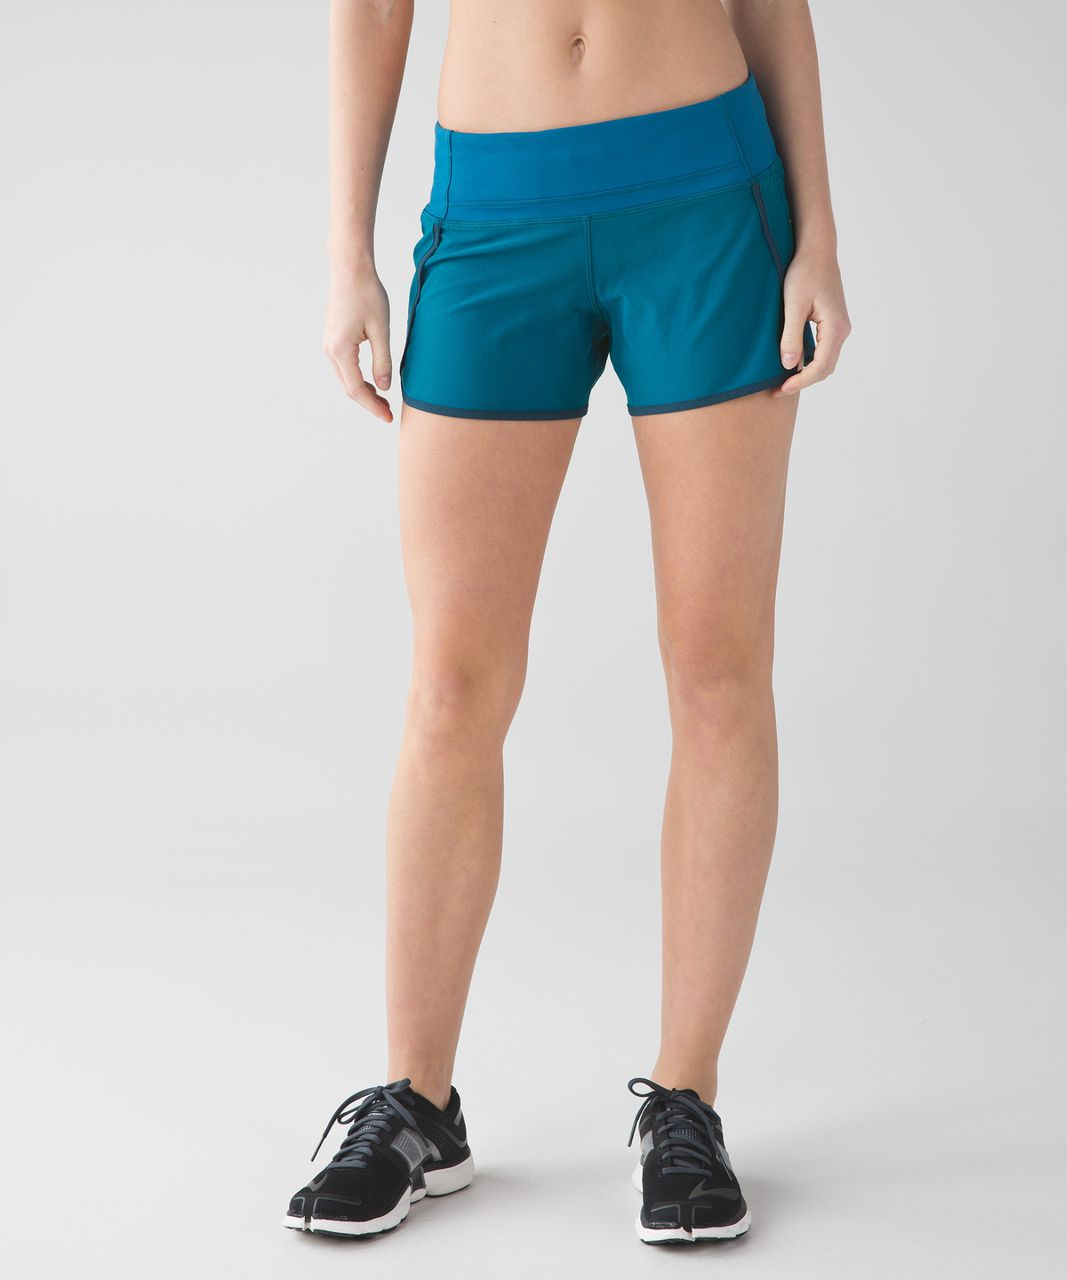 Lululemon Run Times Short (4-way Stretch) - Tofino Teal / Alberta Lake